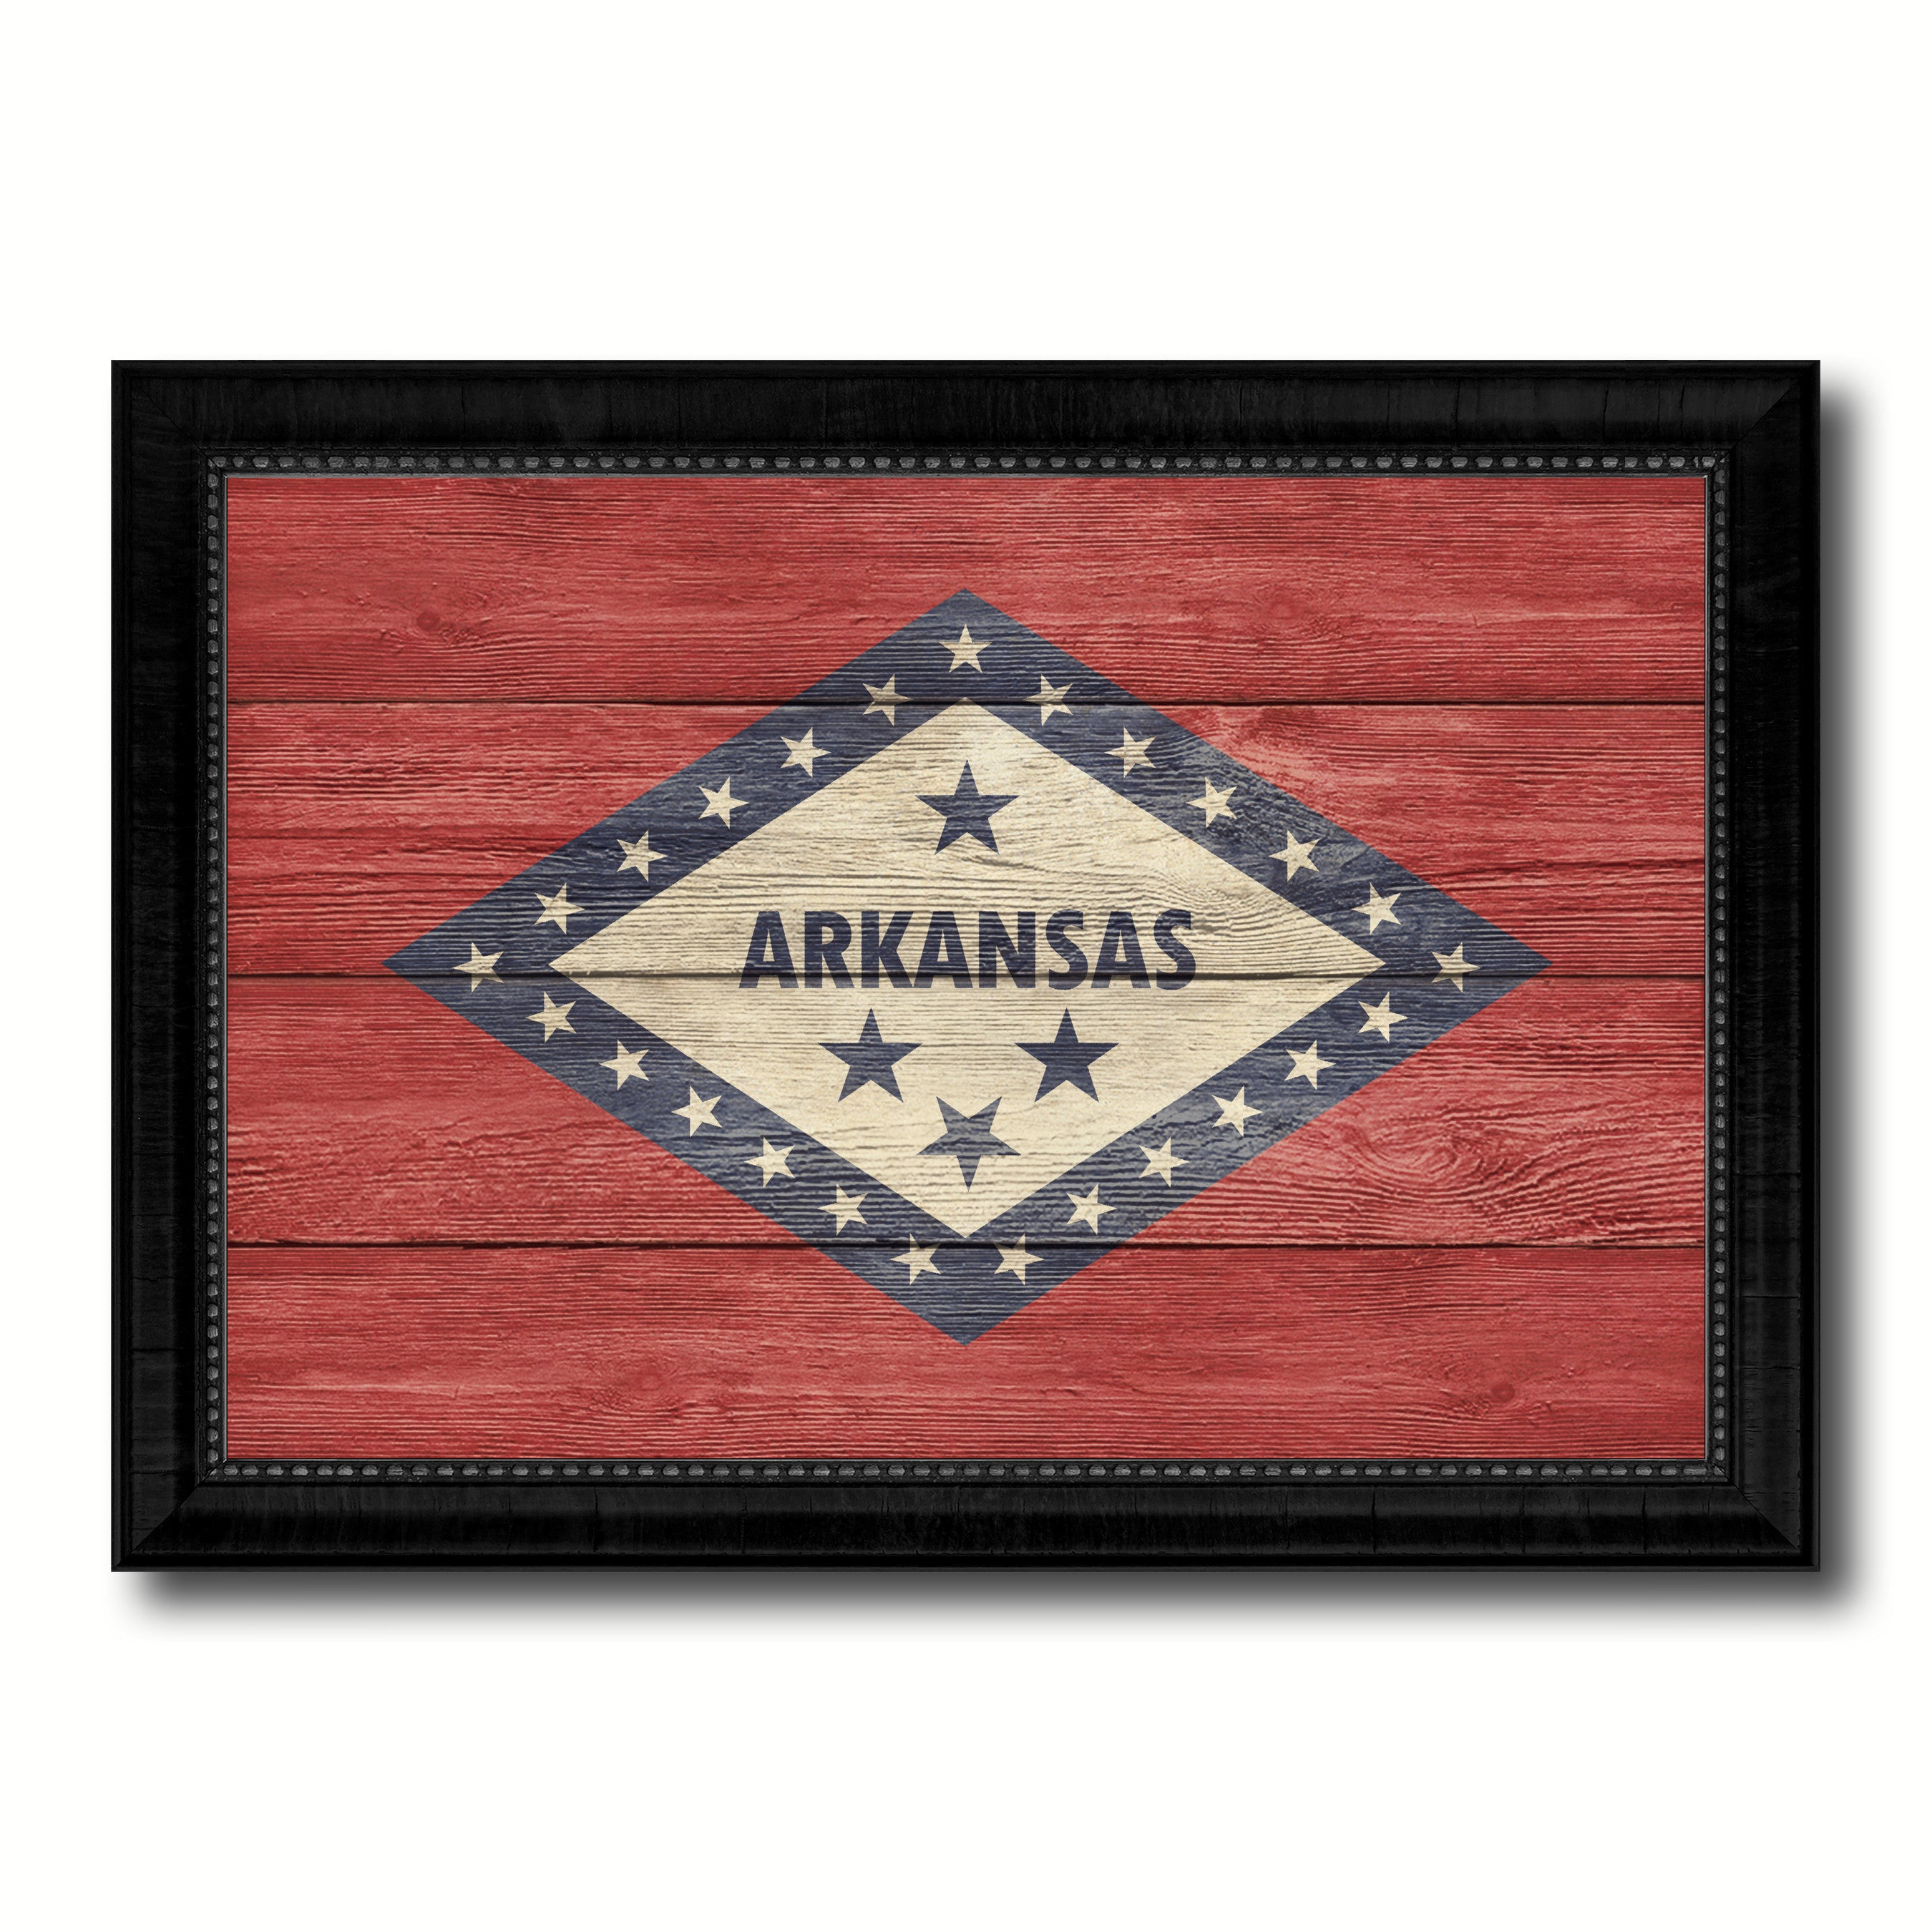 Arkansas State Flag Texture Canvas Print with Black Picture Frame Home Decor Man Cave Wall Art Collectible Decoration Artwork Gifts